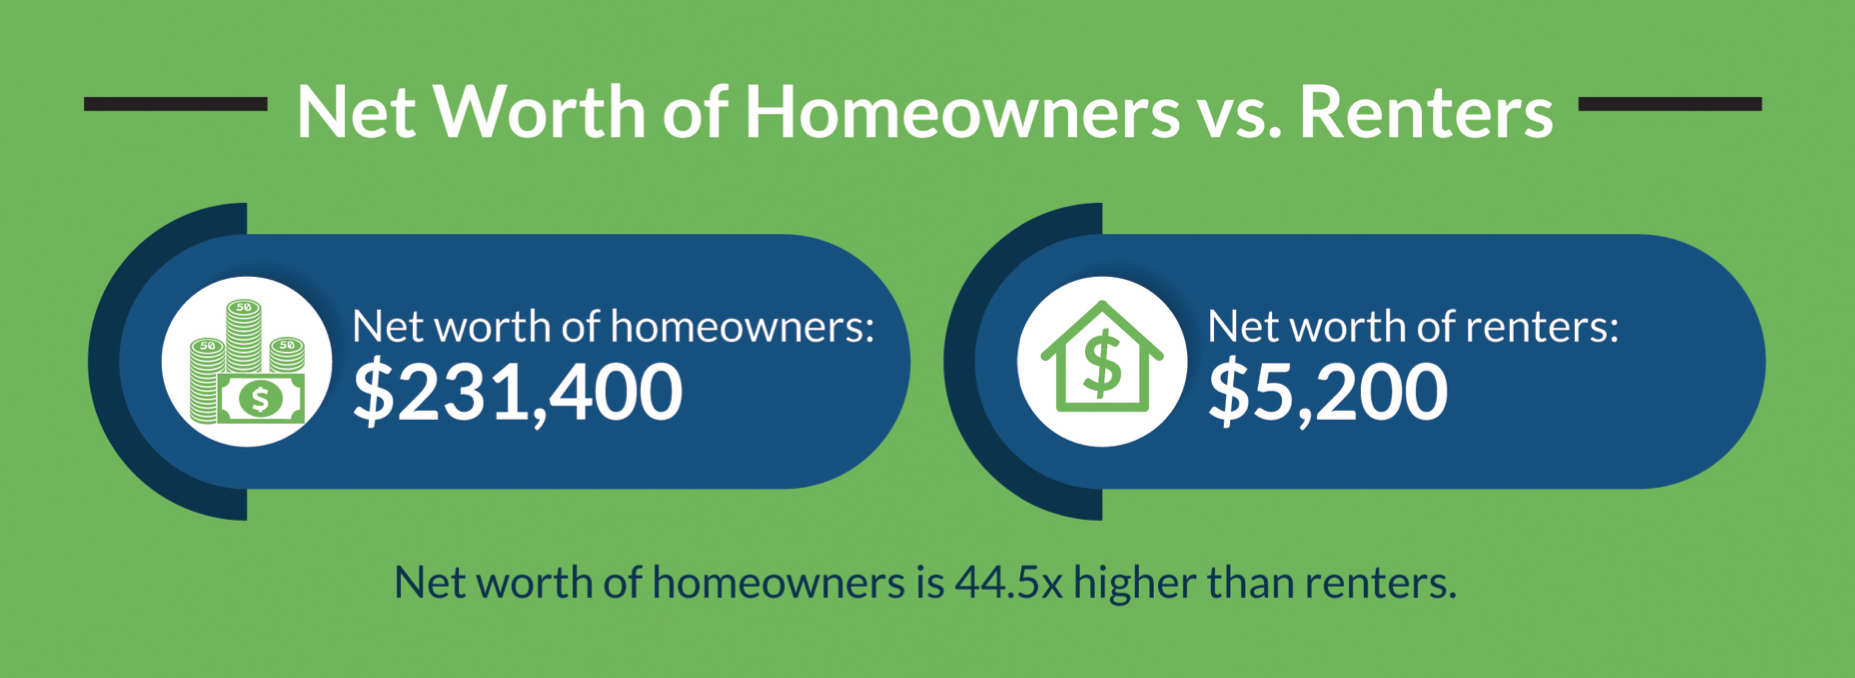 A graphic that shows two big numbers - $231,400 is the average net worth of homeowners, and $5,200 is the average net worth of renters.